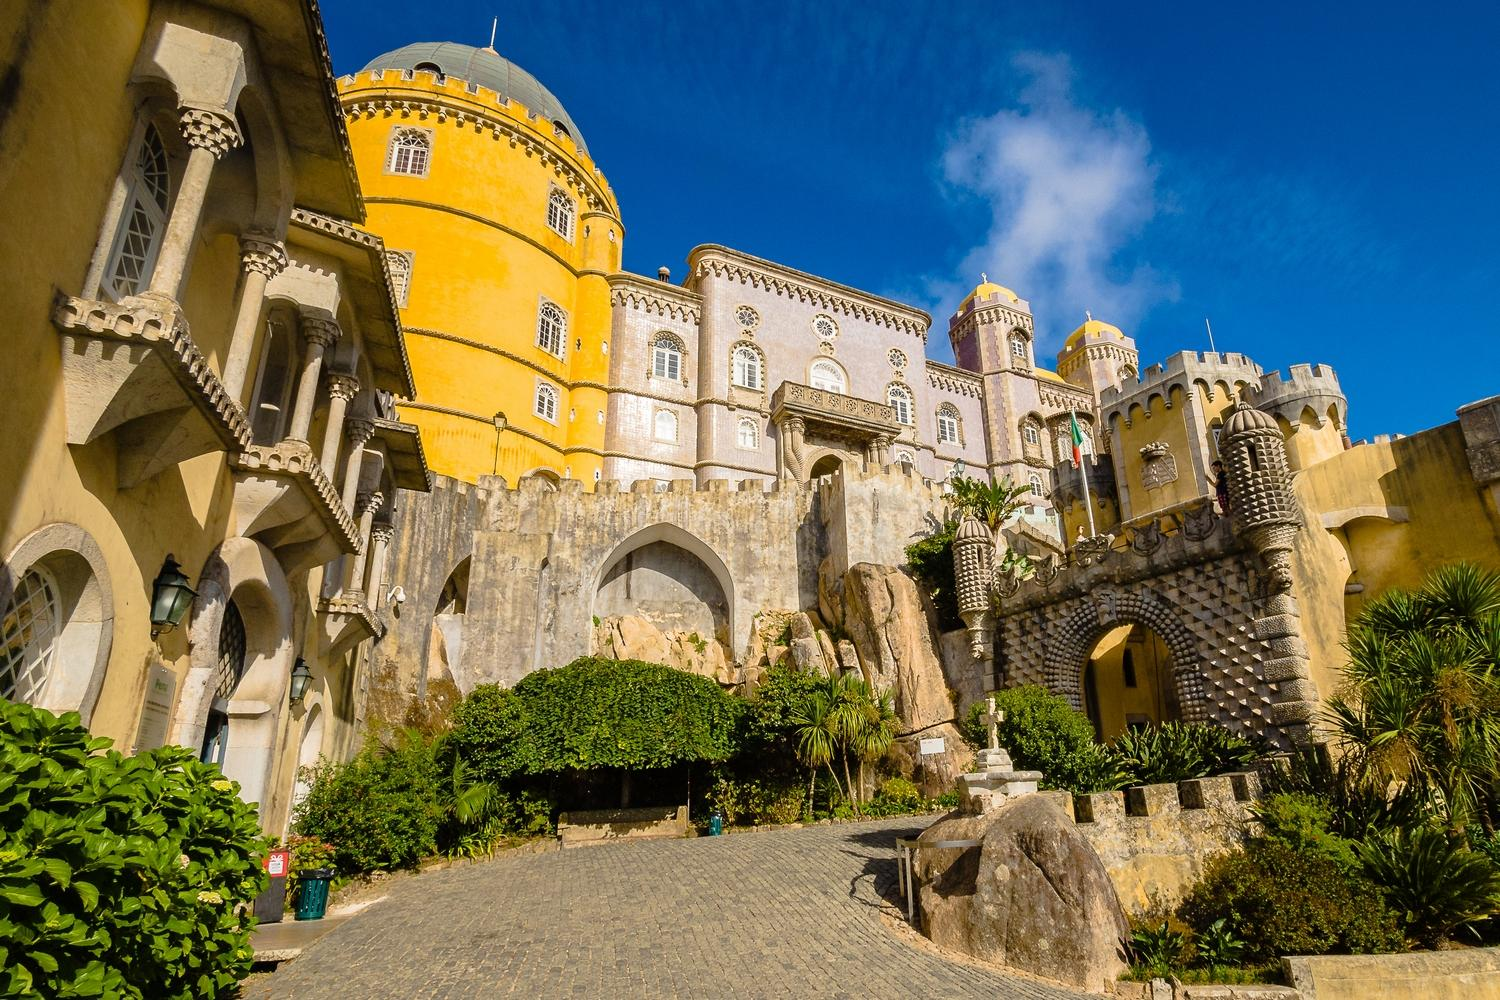 Enjoy a self-guided walking holiday in Sintra